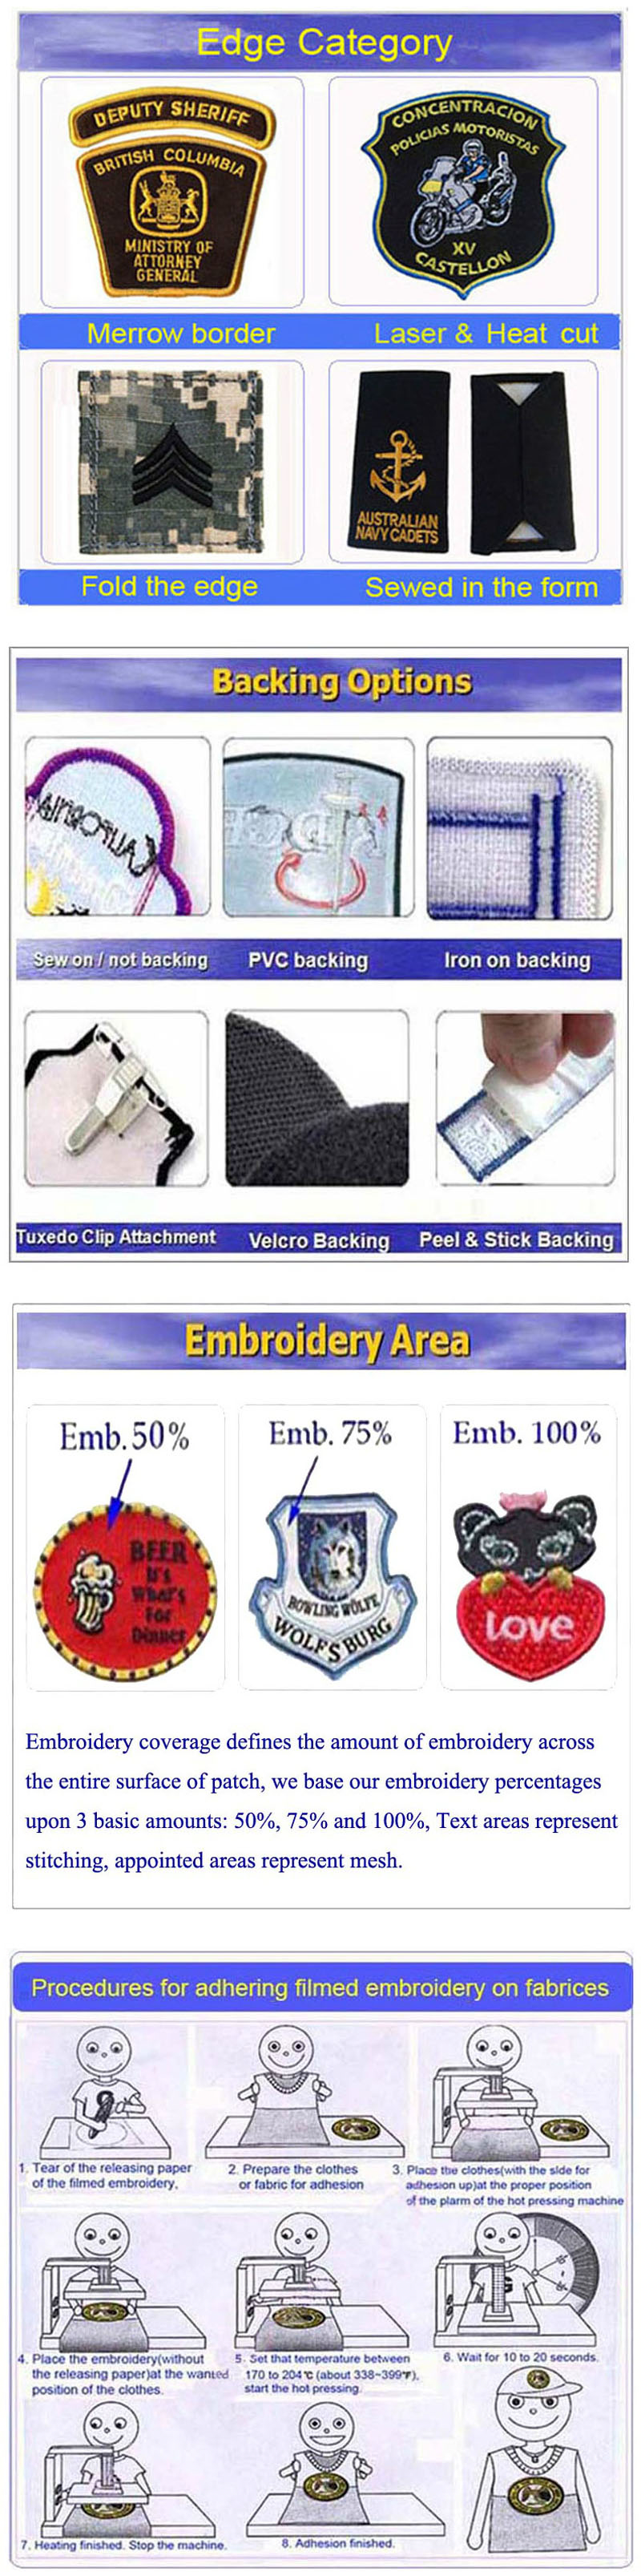 Embroidered Badges Technology Guide